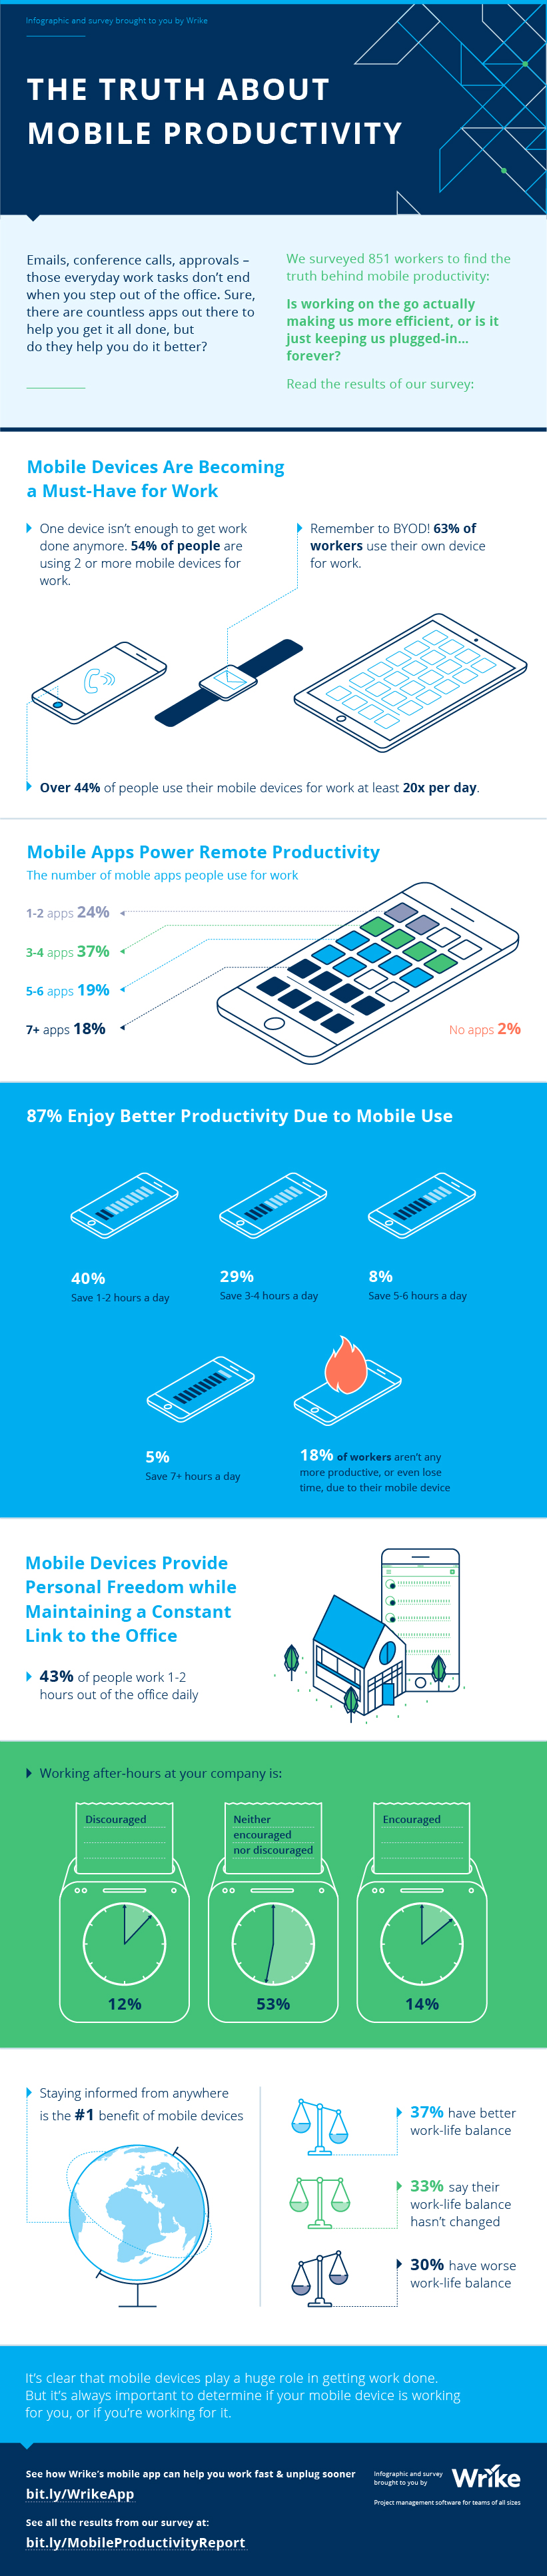 The Truth About Mobile Productivity (infographic)